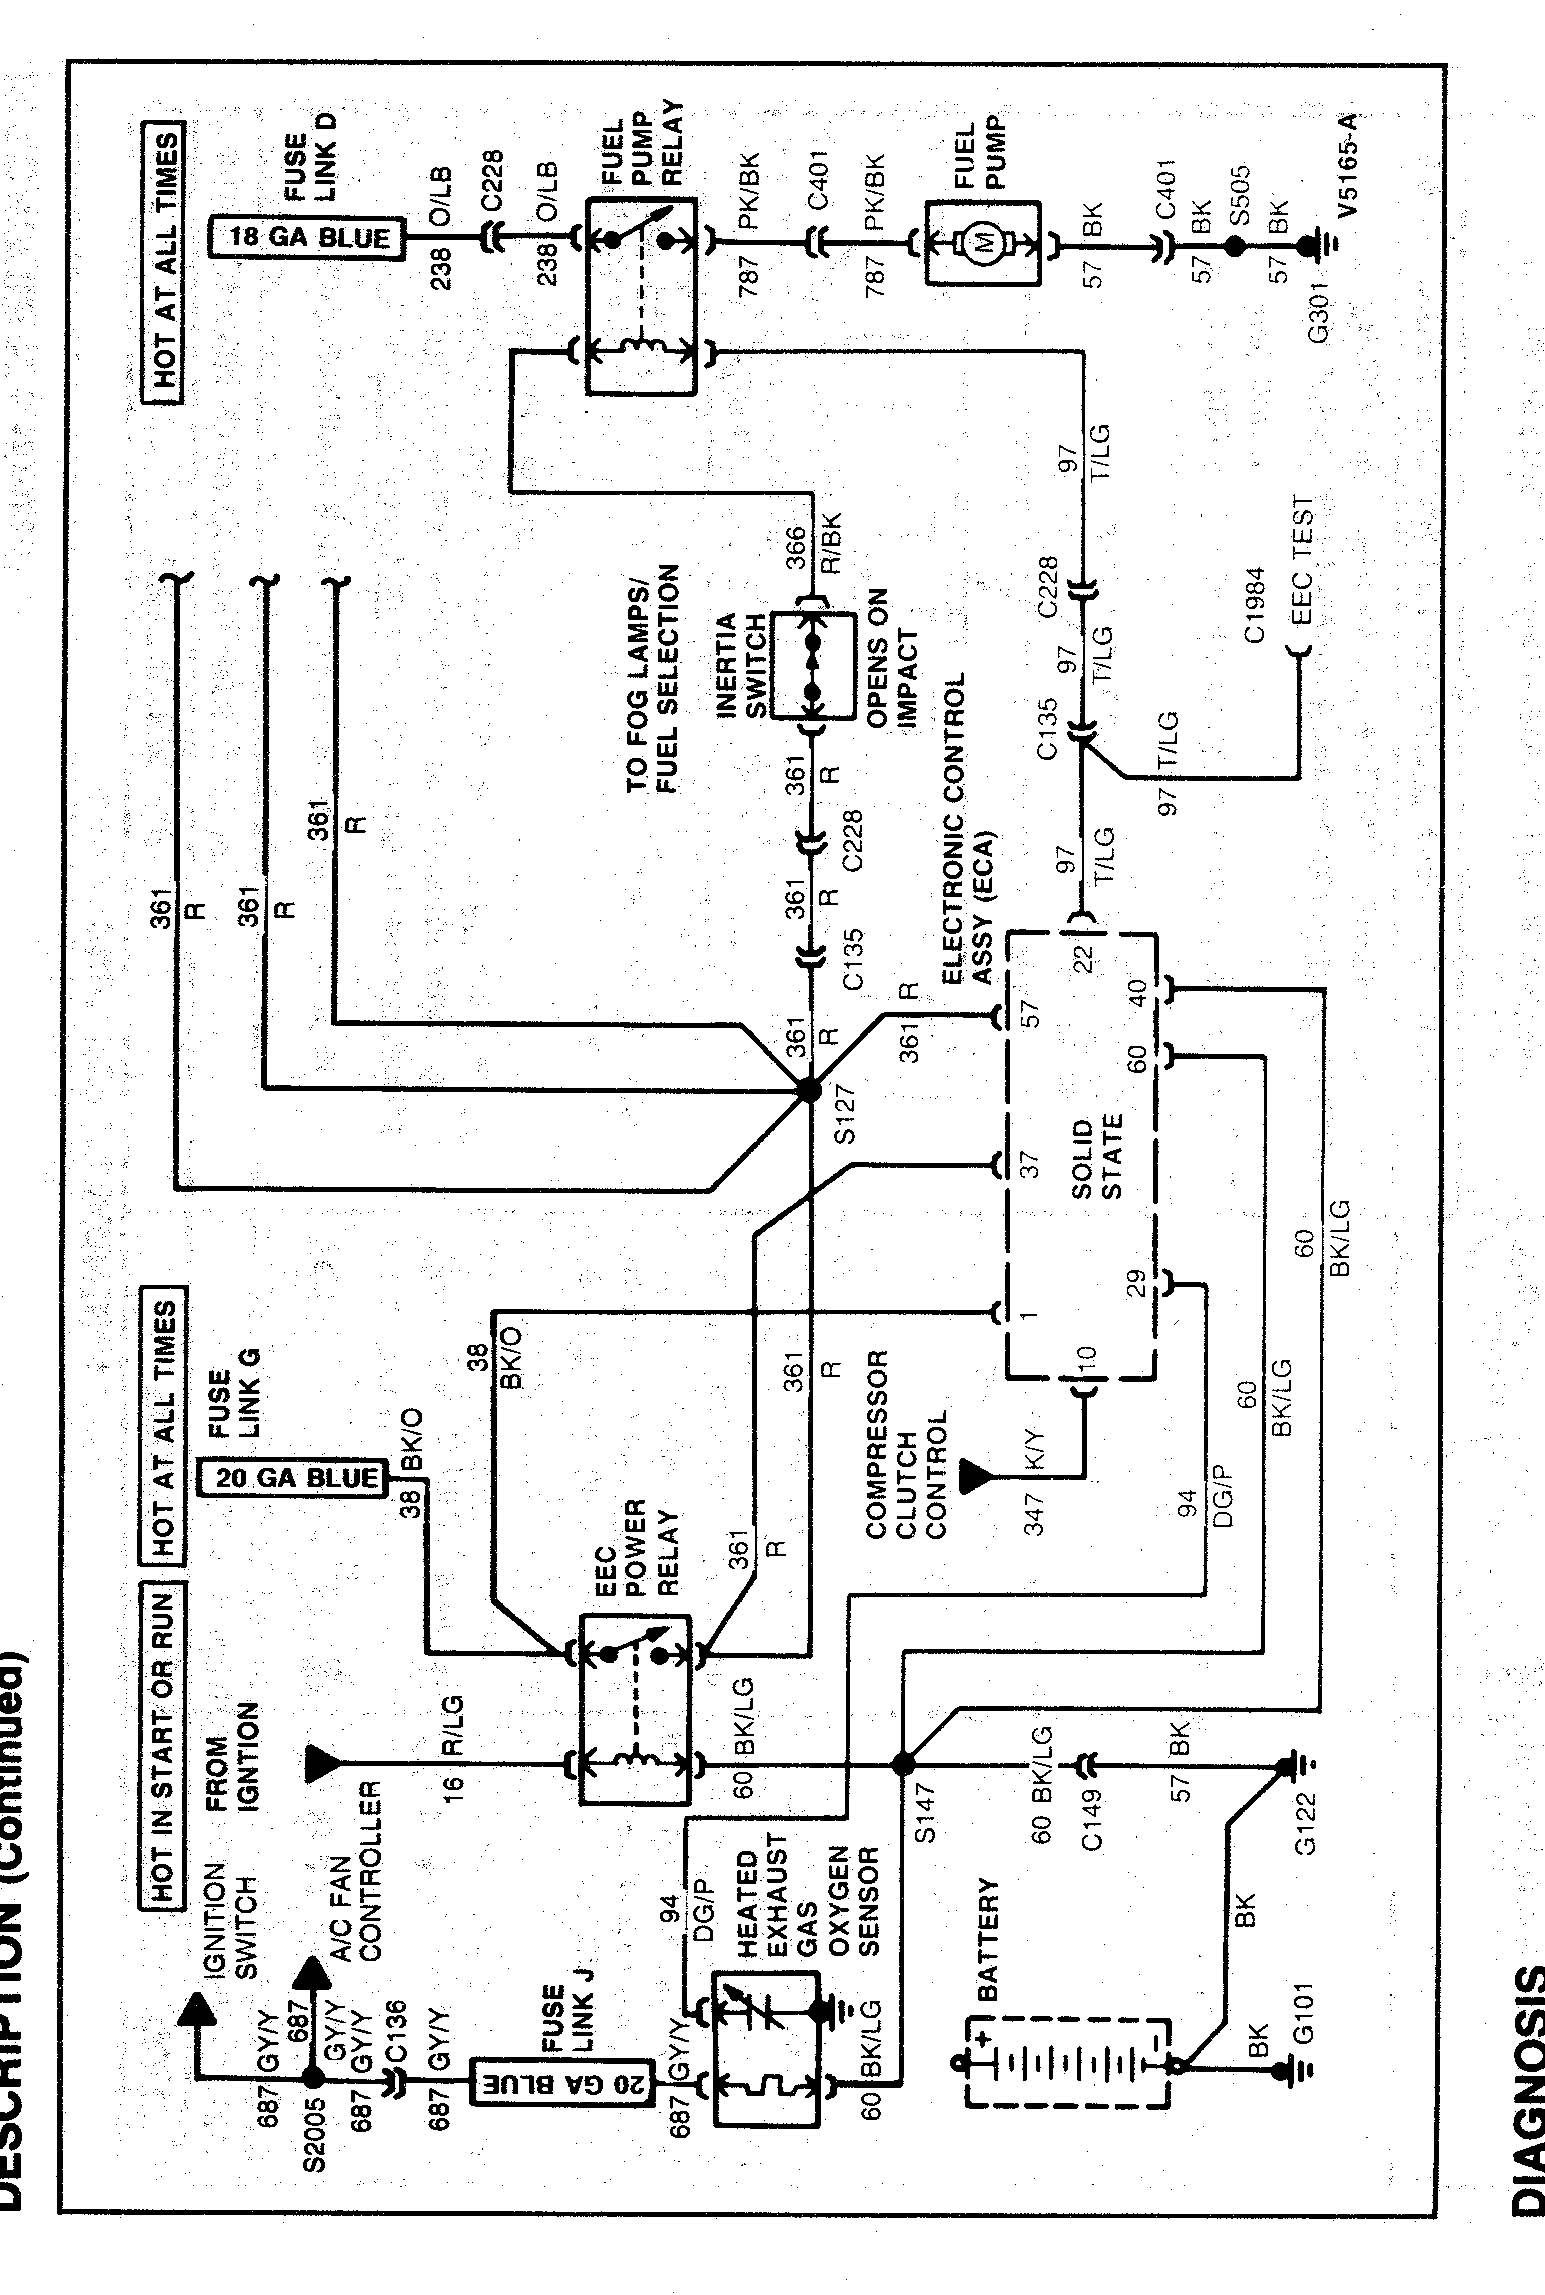 Ford Taurus Fuel Pump Wiring Diagram